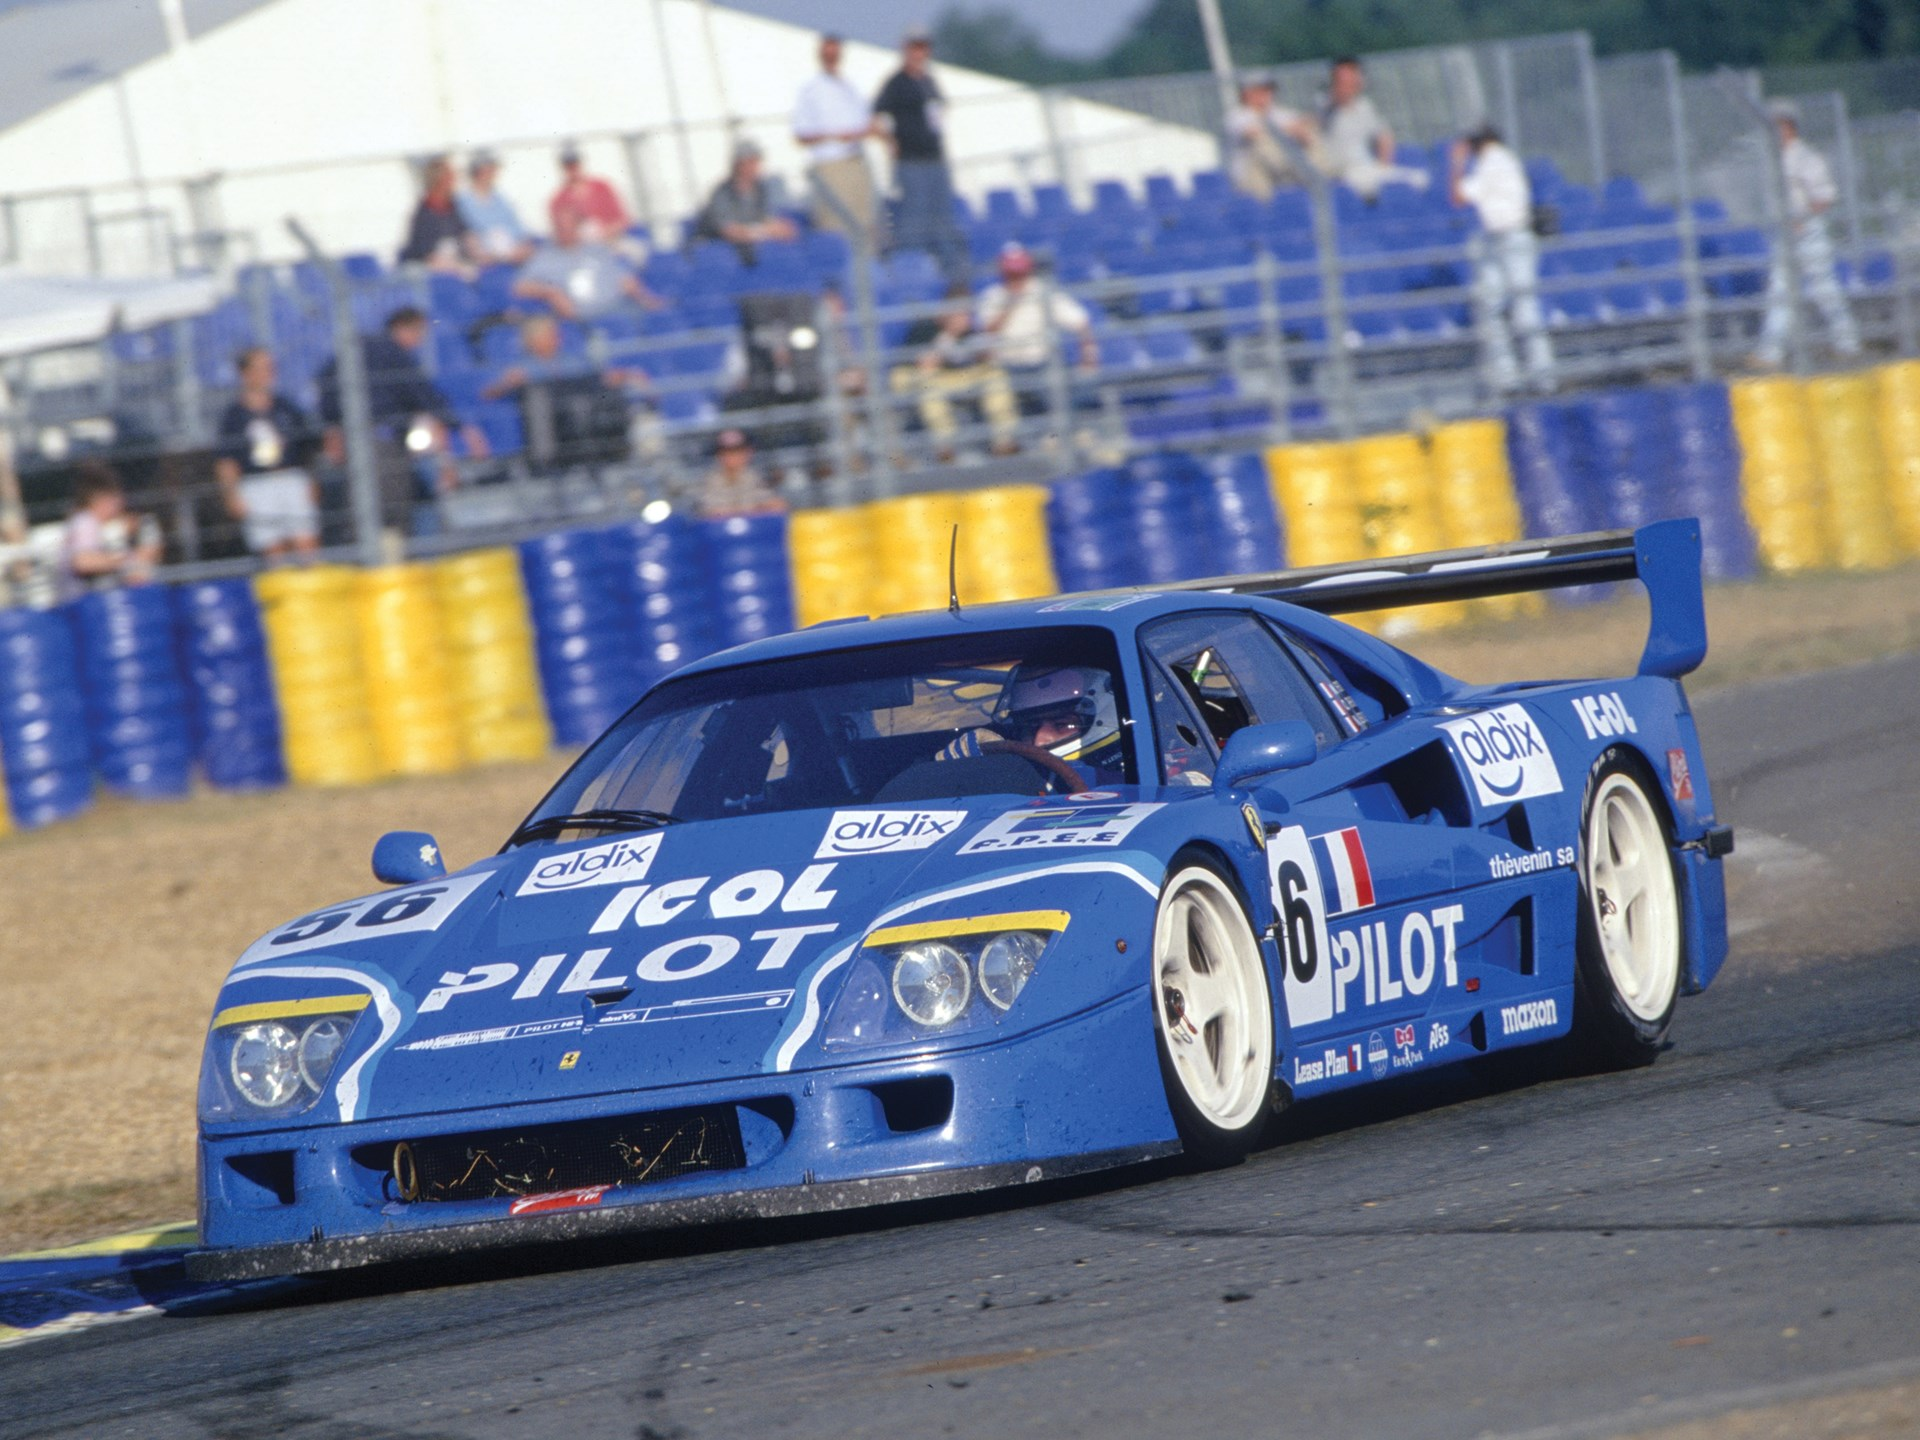 The F40 LM at the 1996 24 Hours of Le Mans